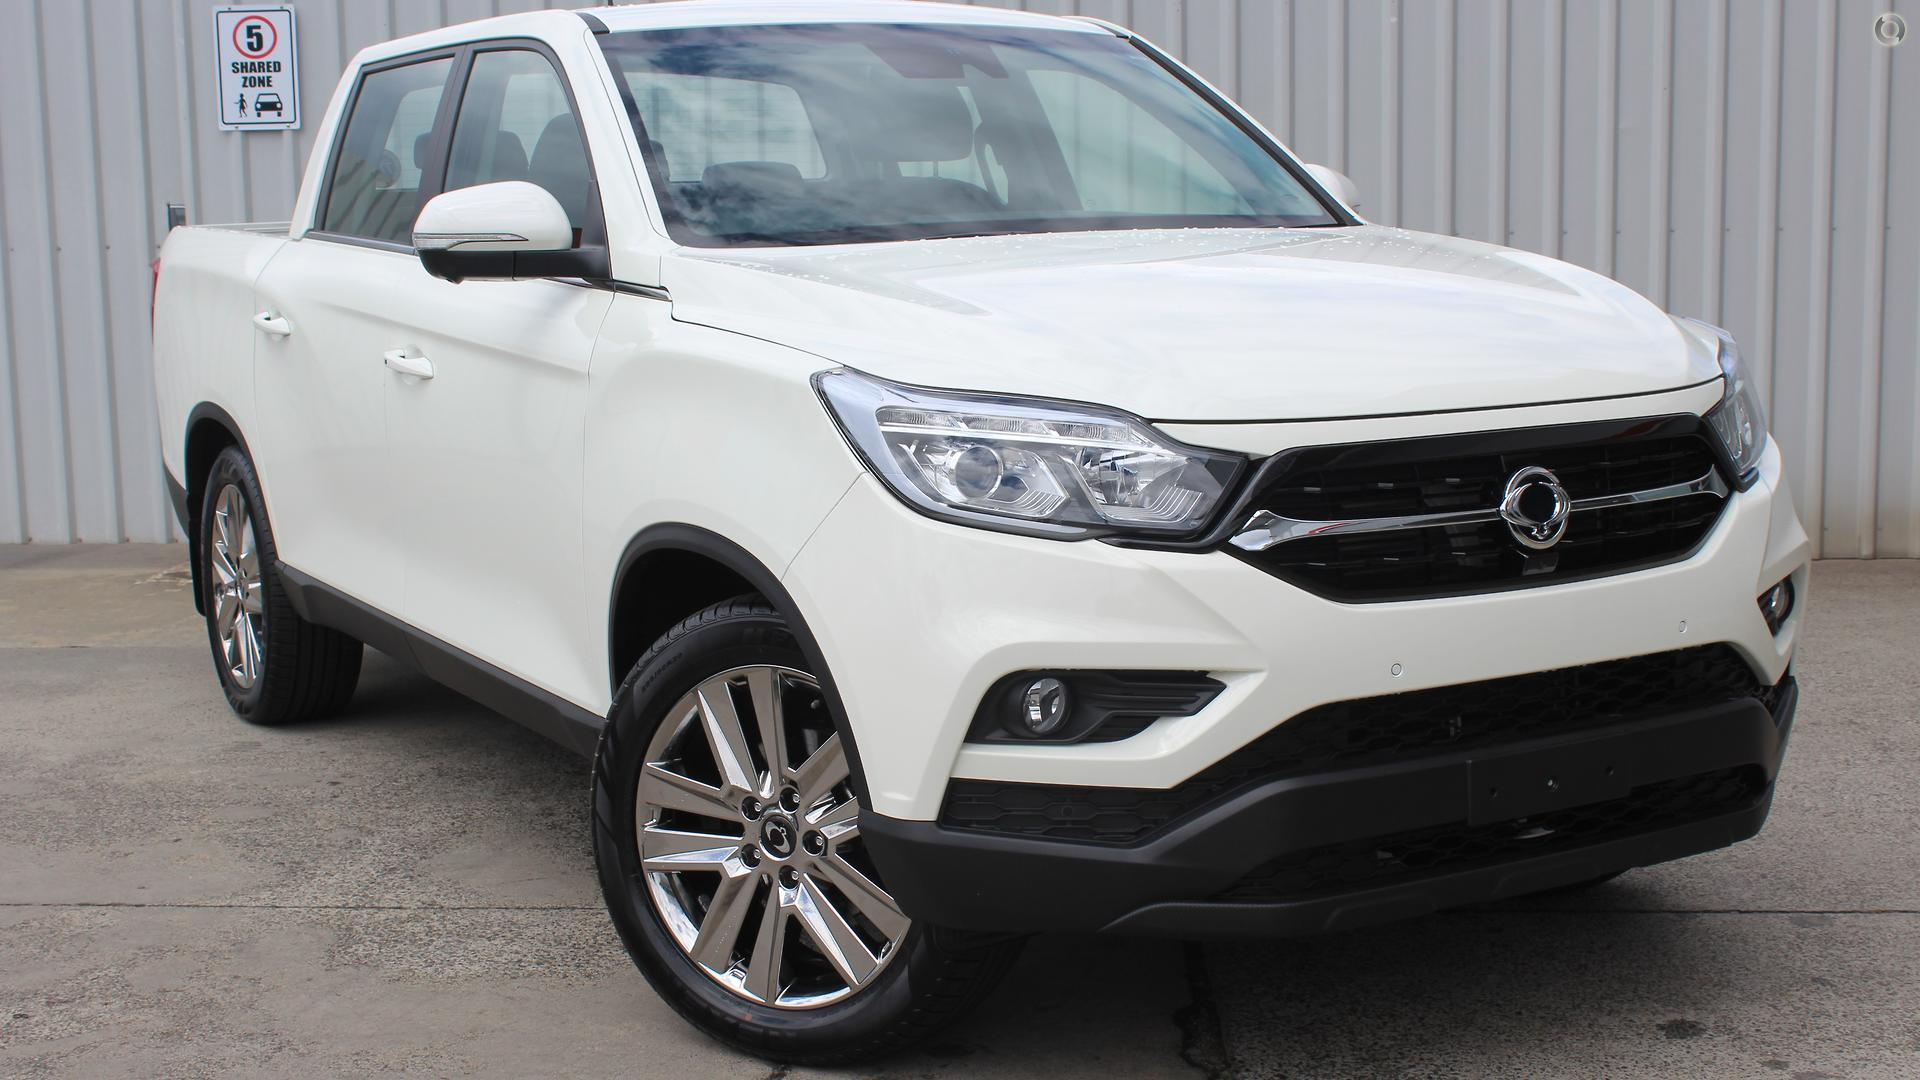 2019 SsangYong Musso Q200